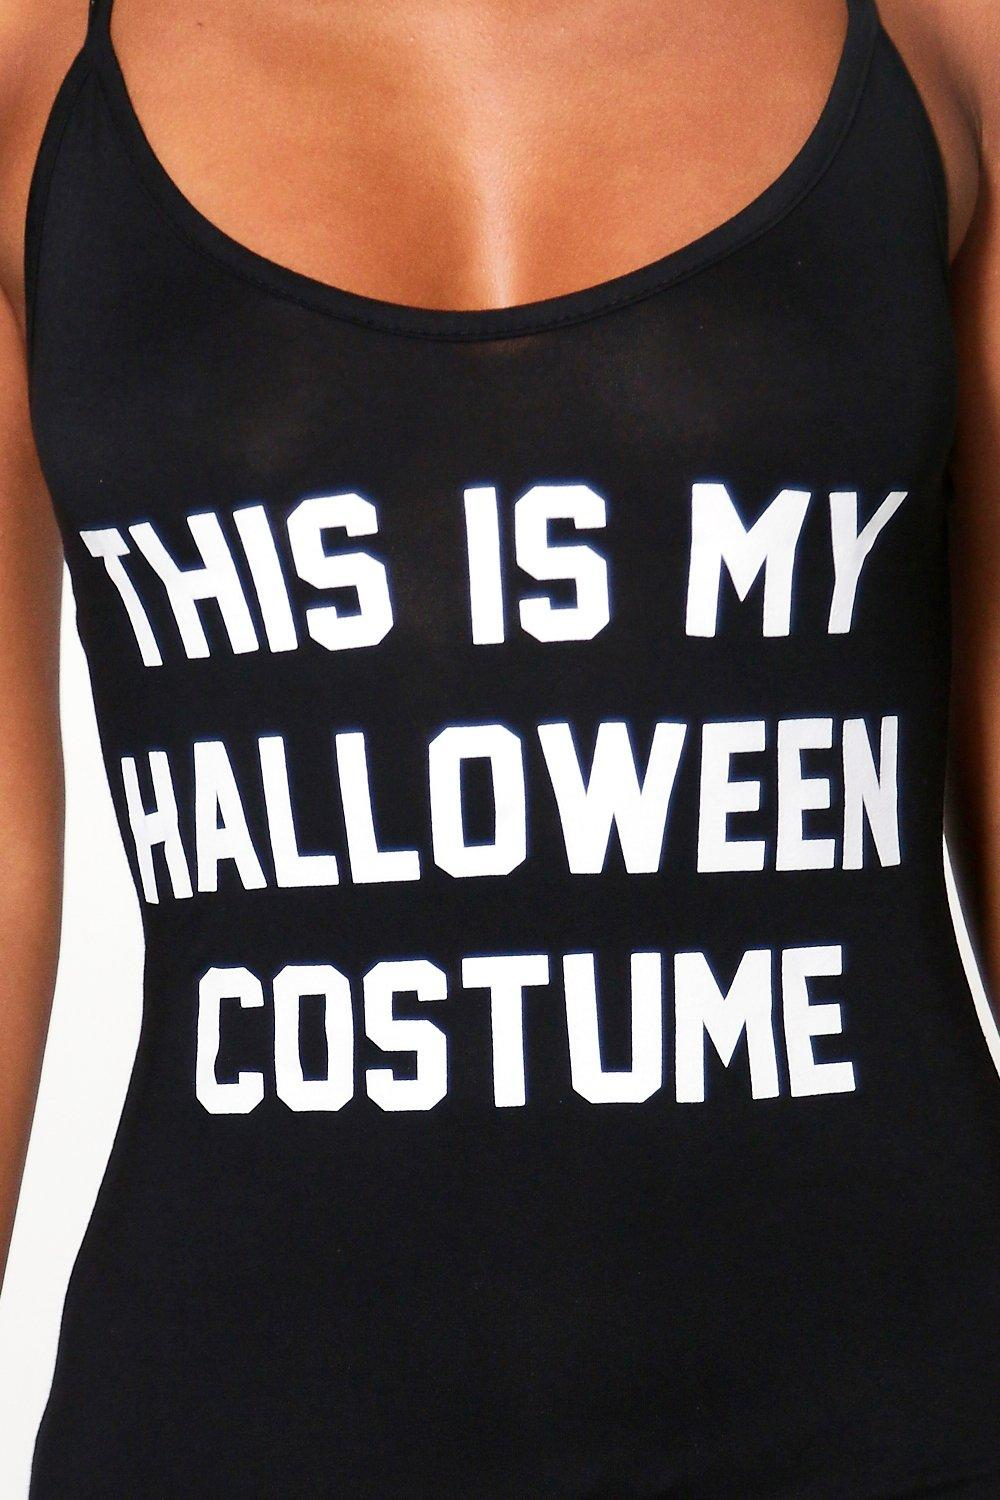 Costume halloween aderente aderente halloween Costume r7w6ax0qY7